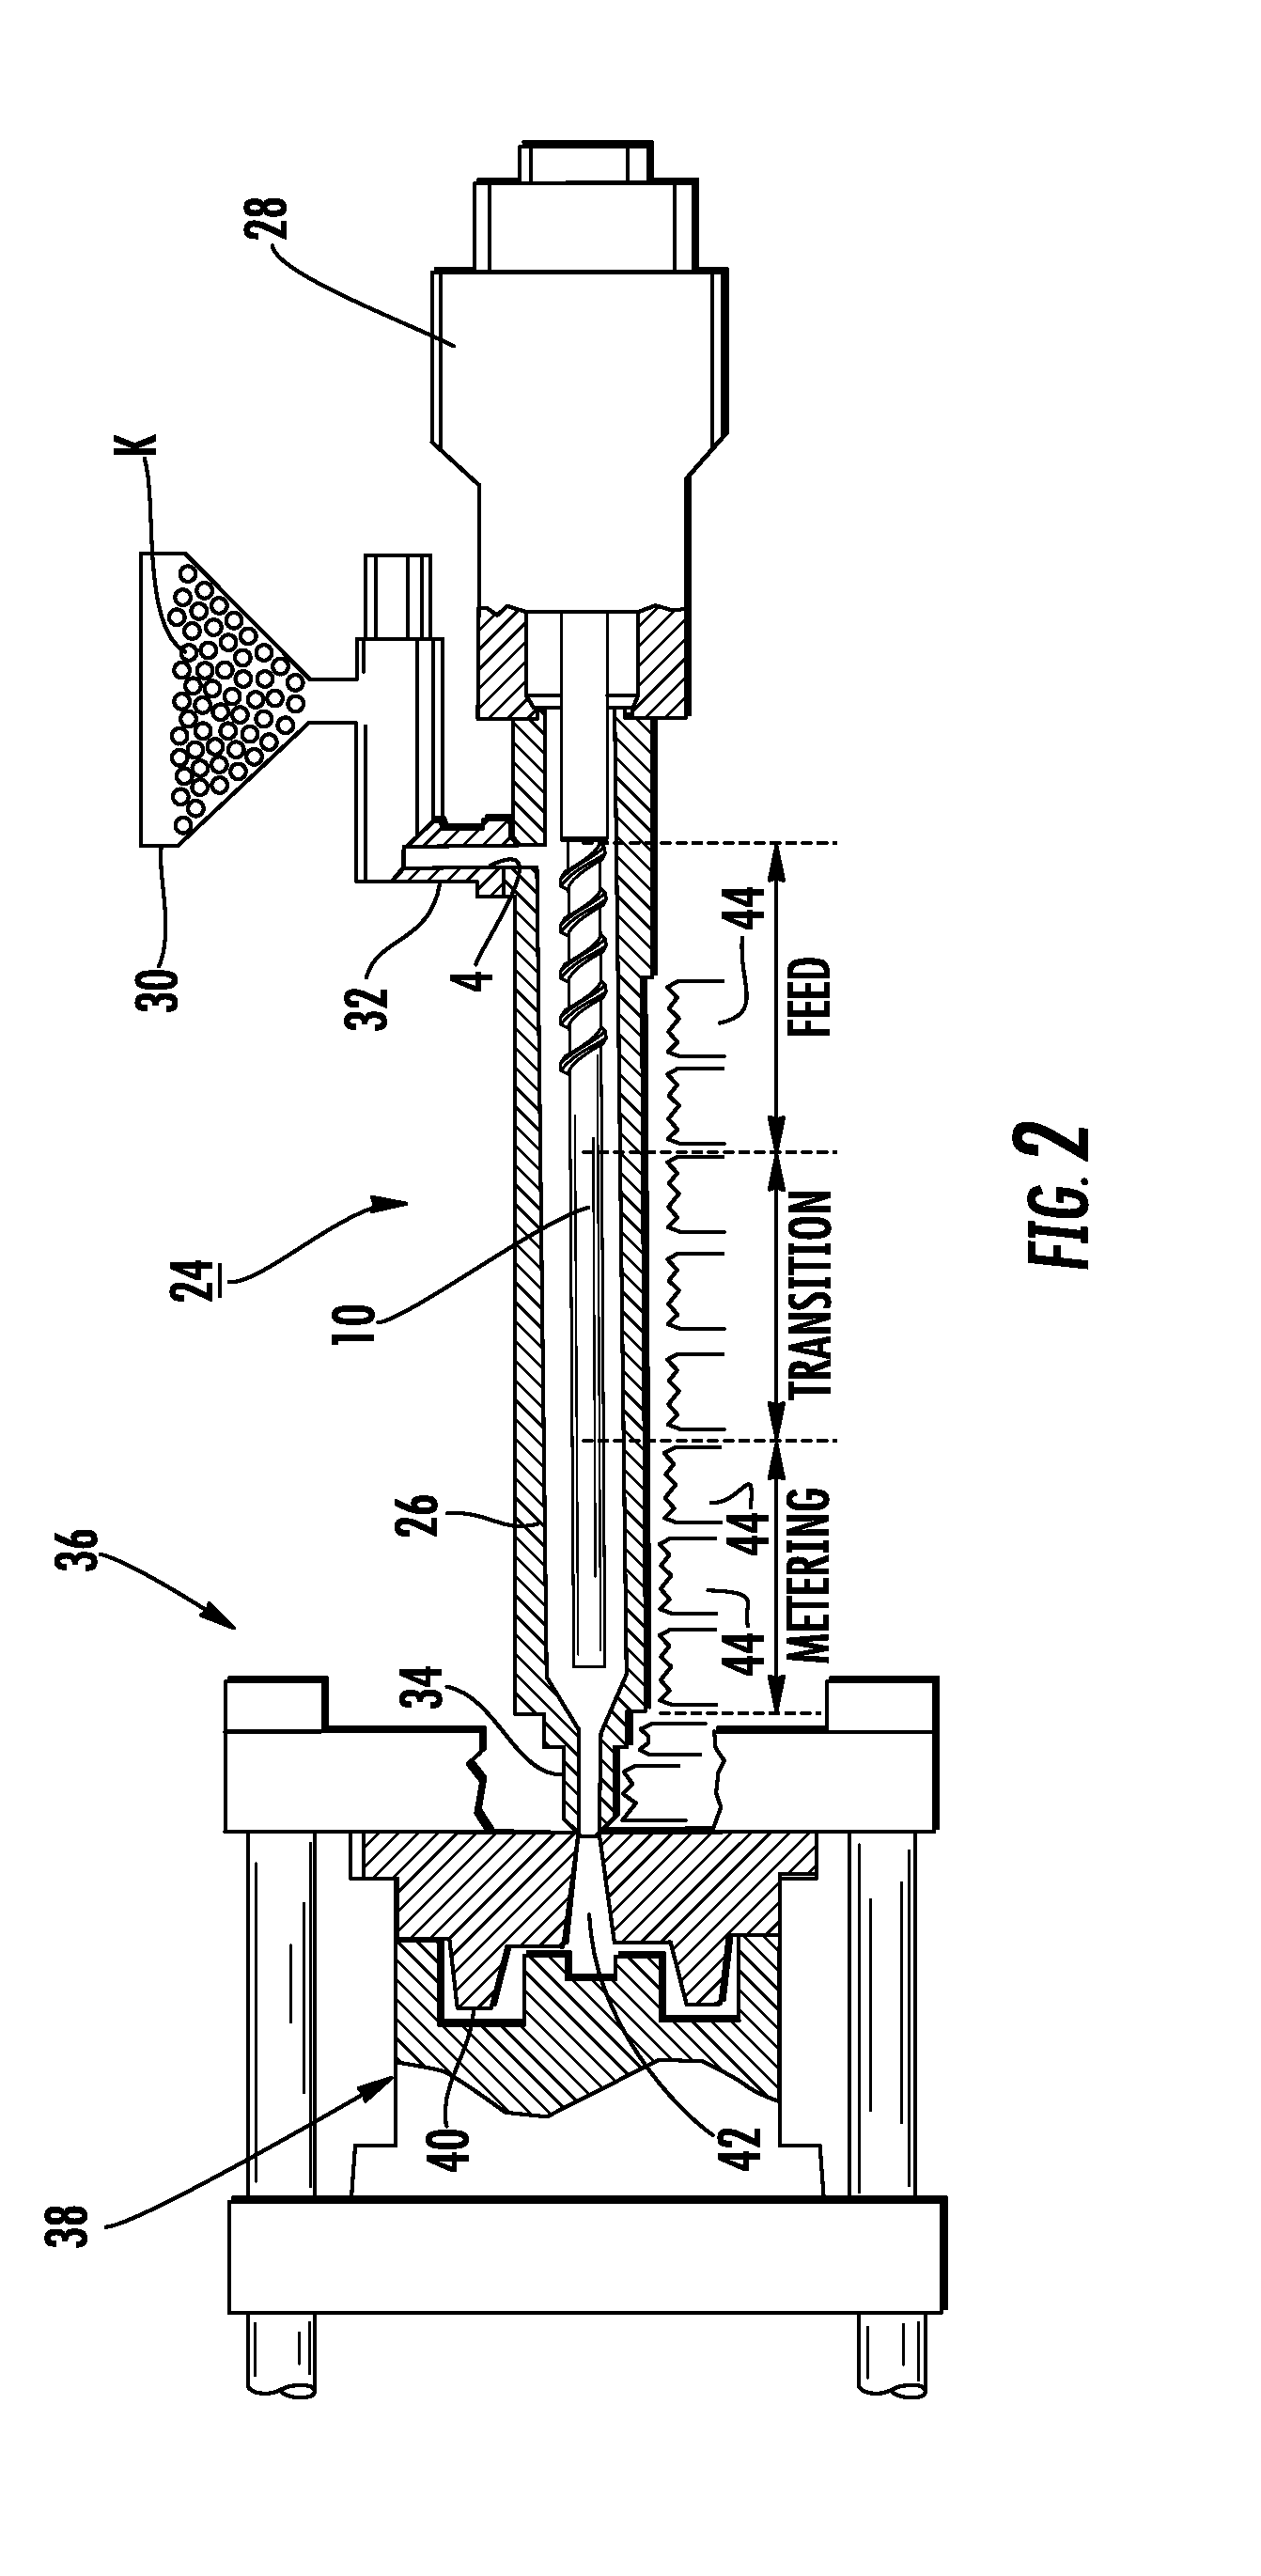 patent us8267149 - screw design and method for metal injection molding